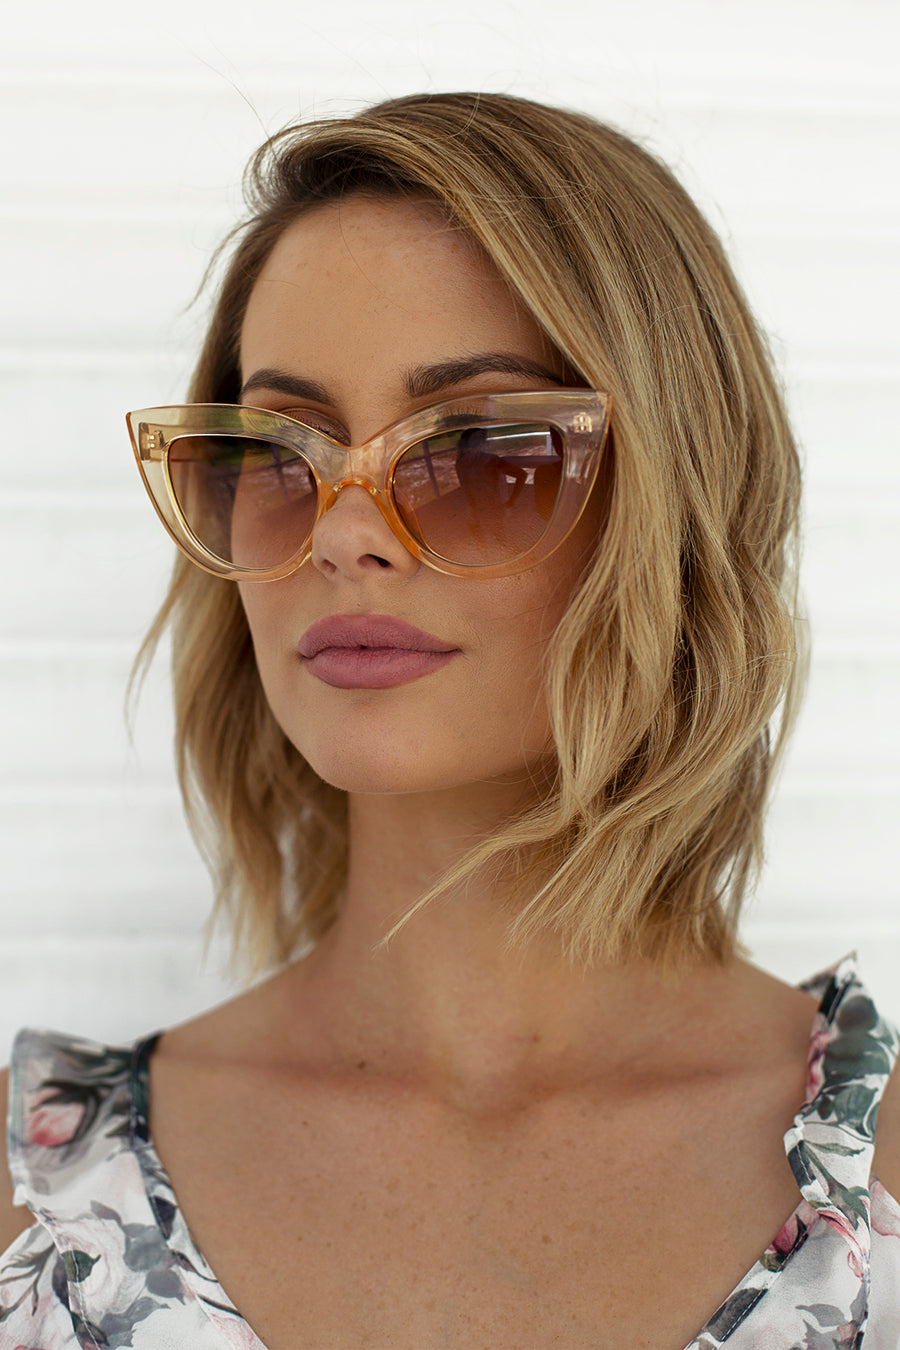 Sonia Cat Eye Sunglasses